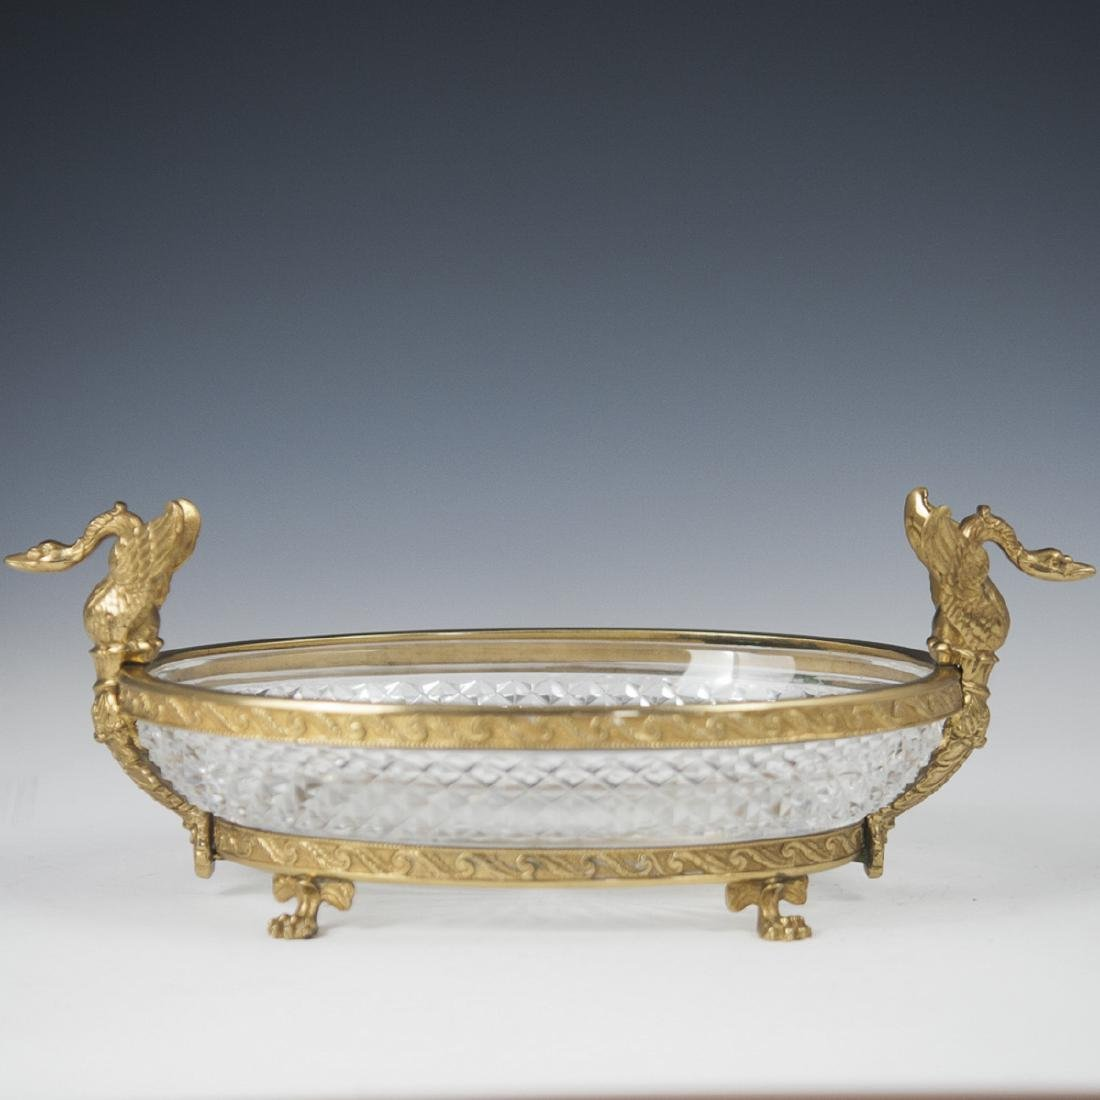 Antique French Mounted Ormolu Crystal Bowl